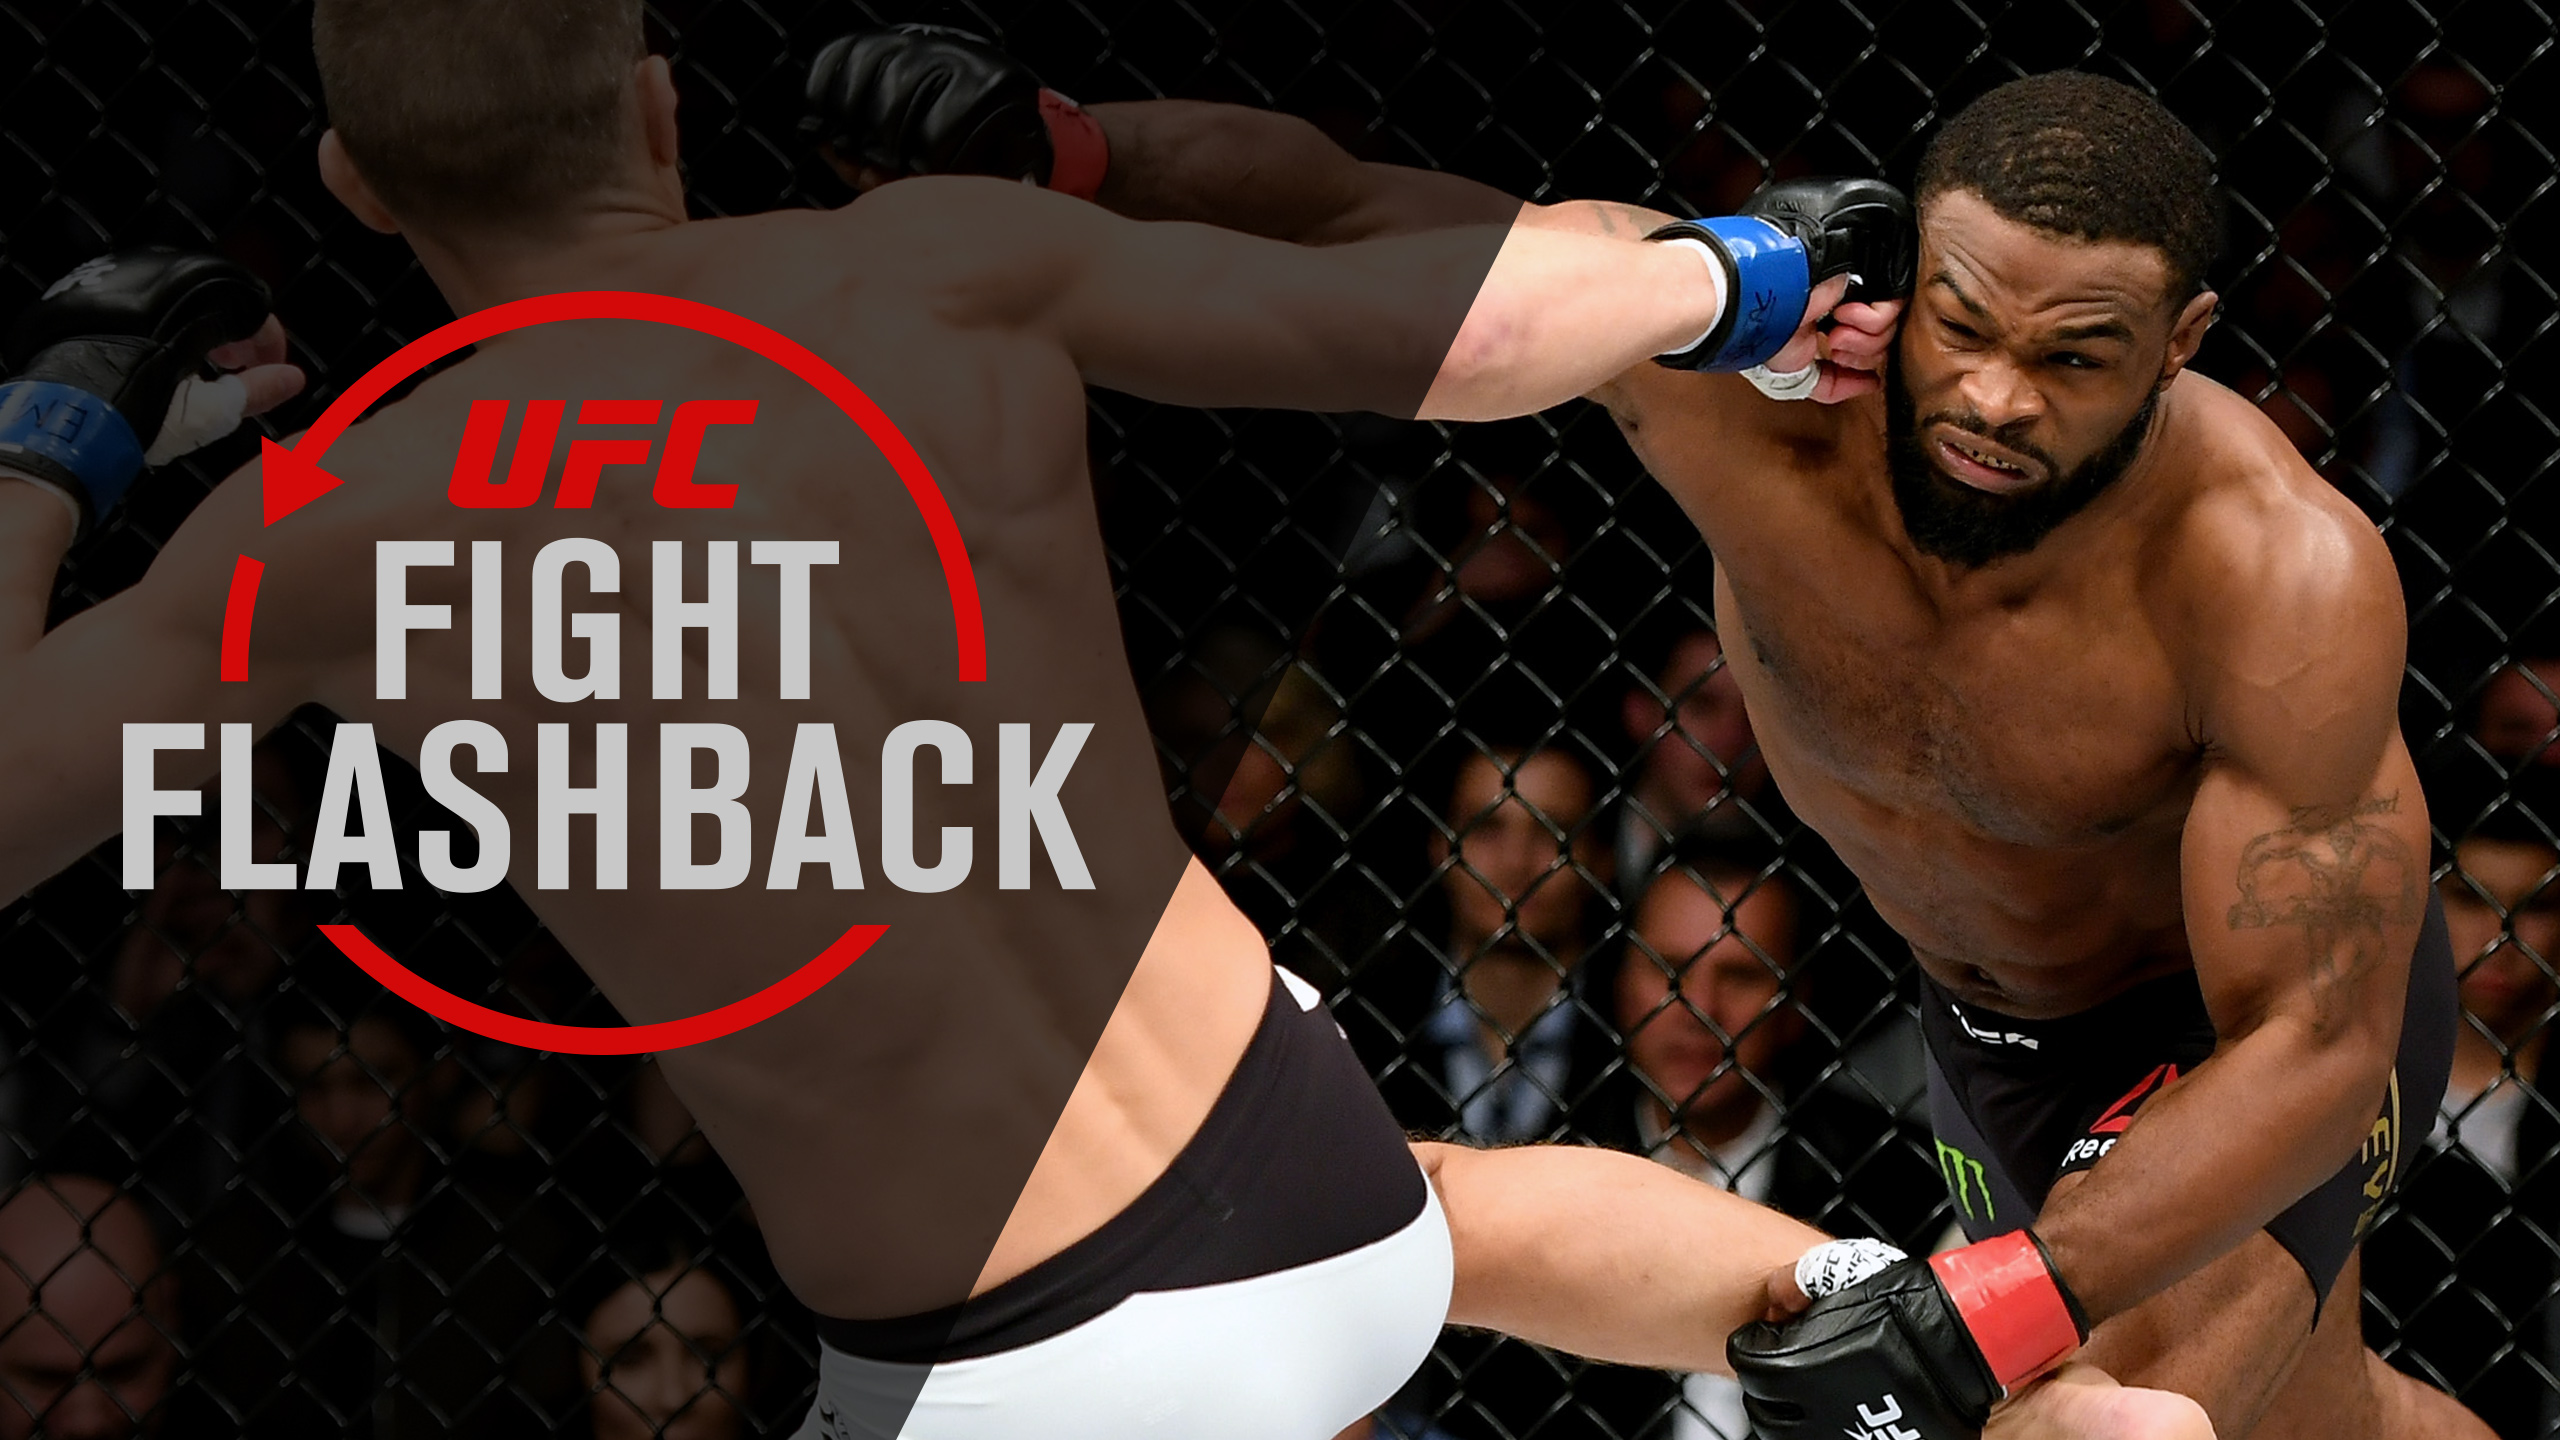 UFC Fight Flashback: Woodley vs. Thompson 1